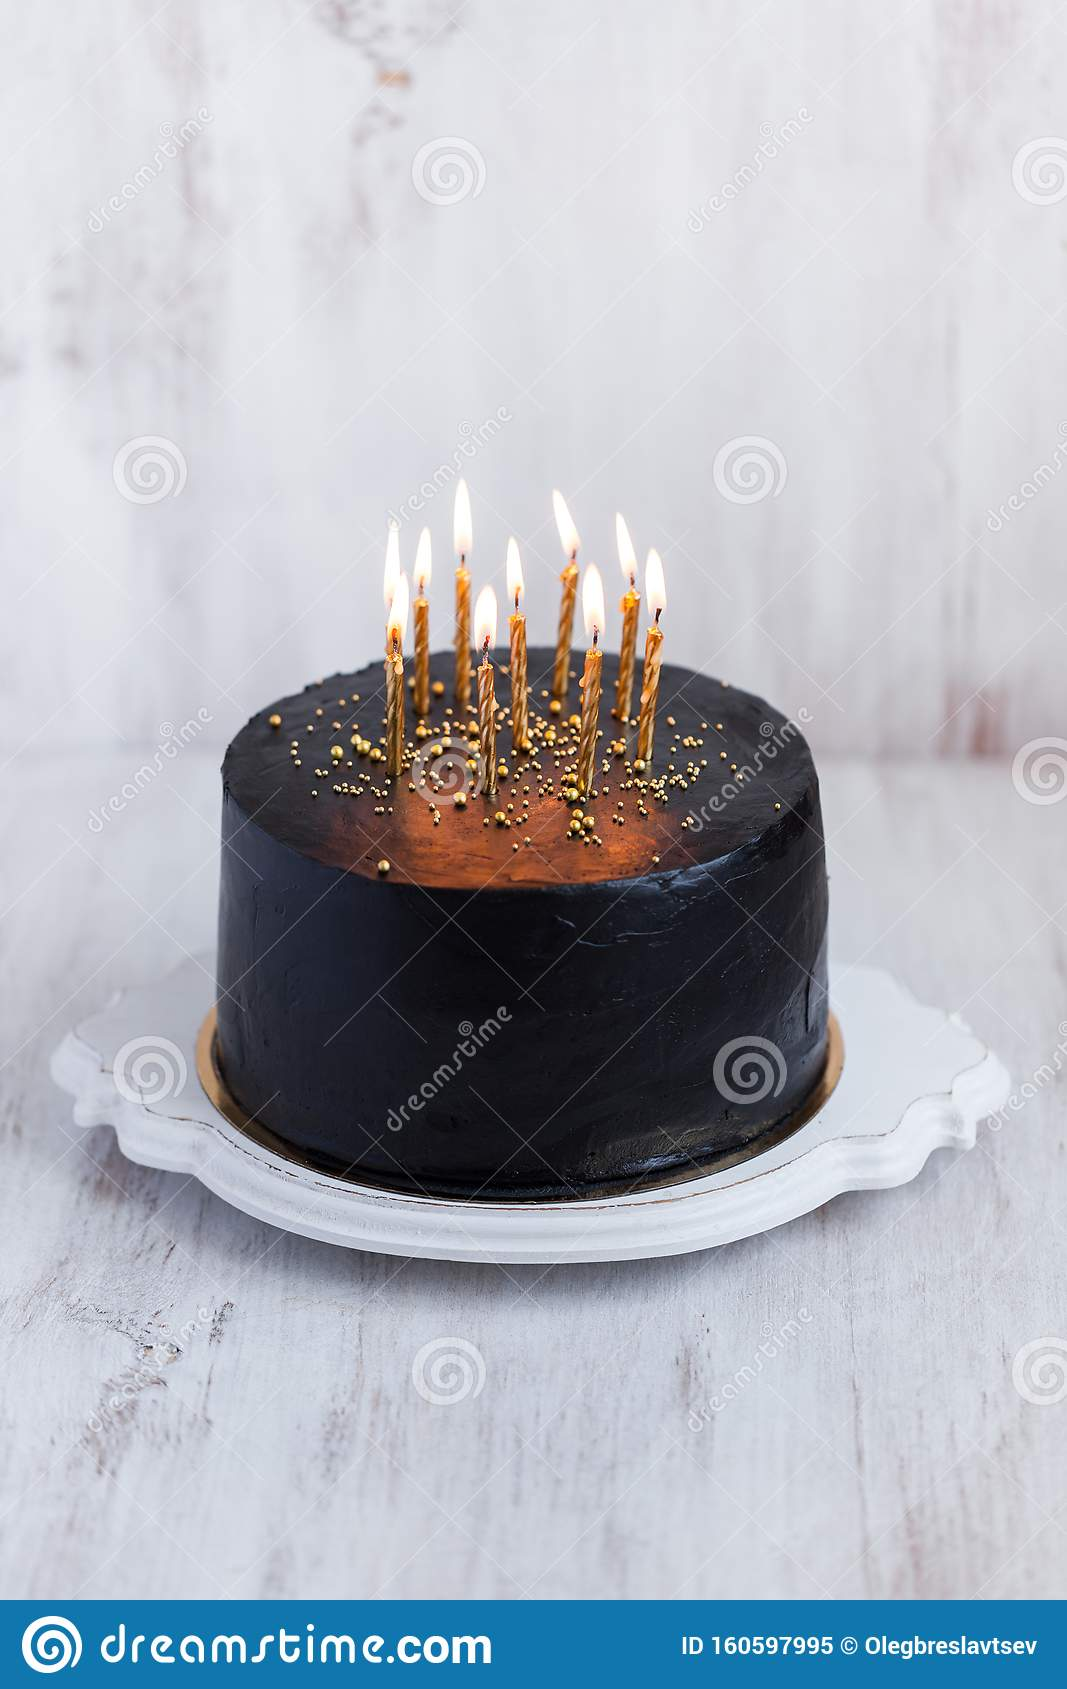 Fantastic Black Round Birthday Cake With Burning Golden Candles Close Up Funny Birthday Cards Online Inifodamsfinfo